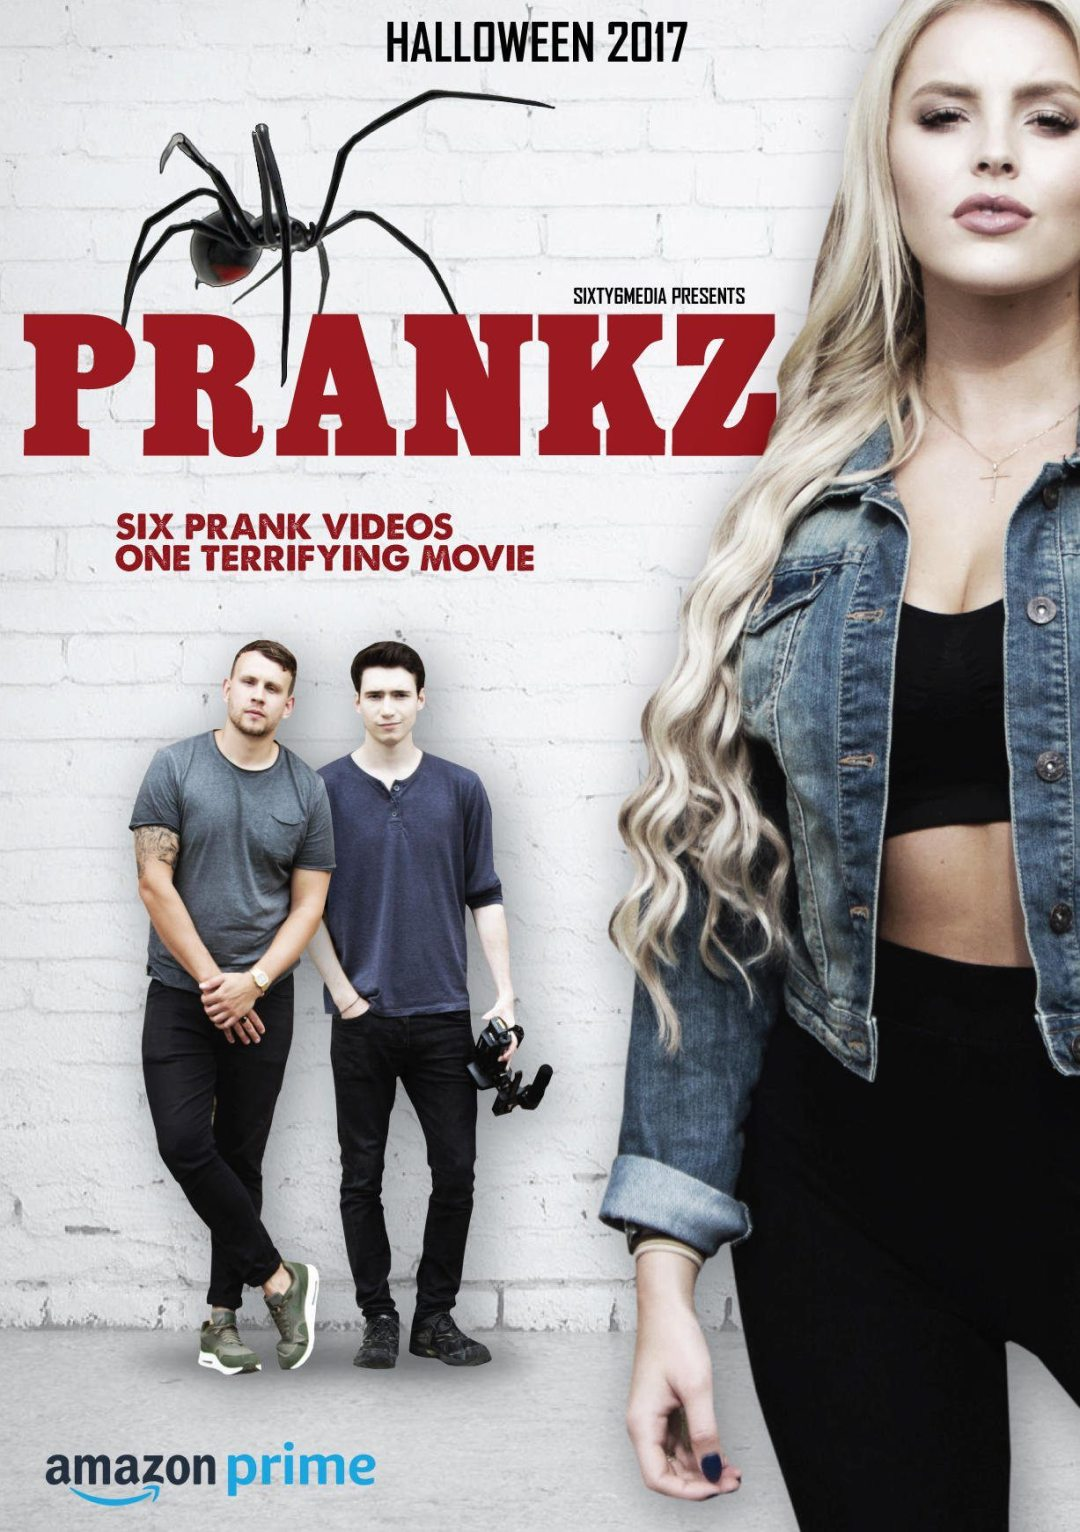 'Prankz' is Coming to Amazon!